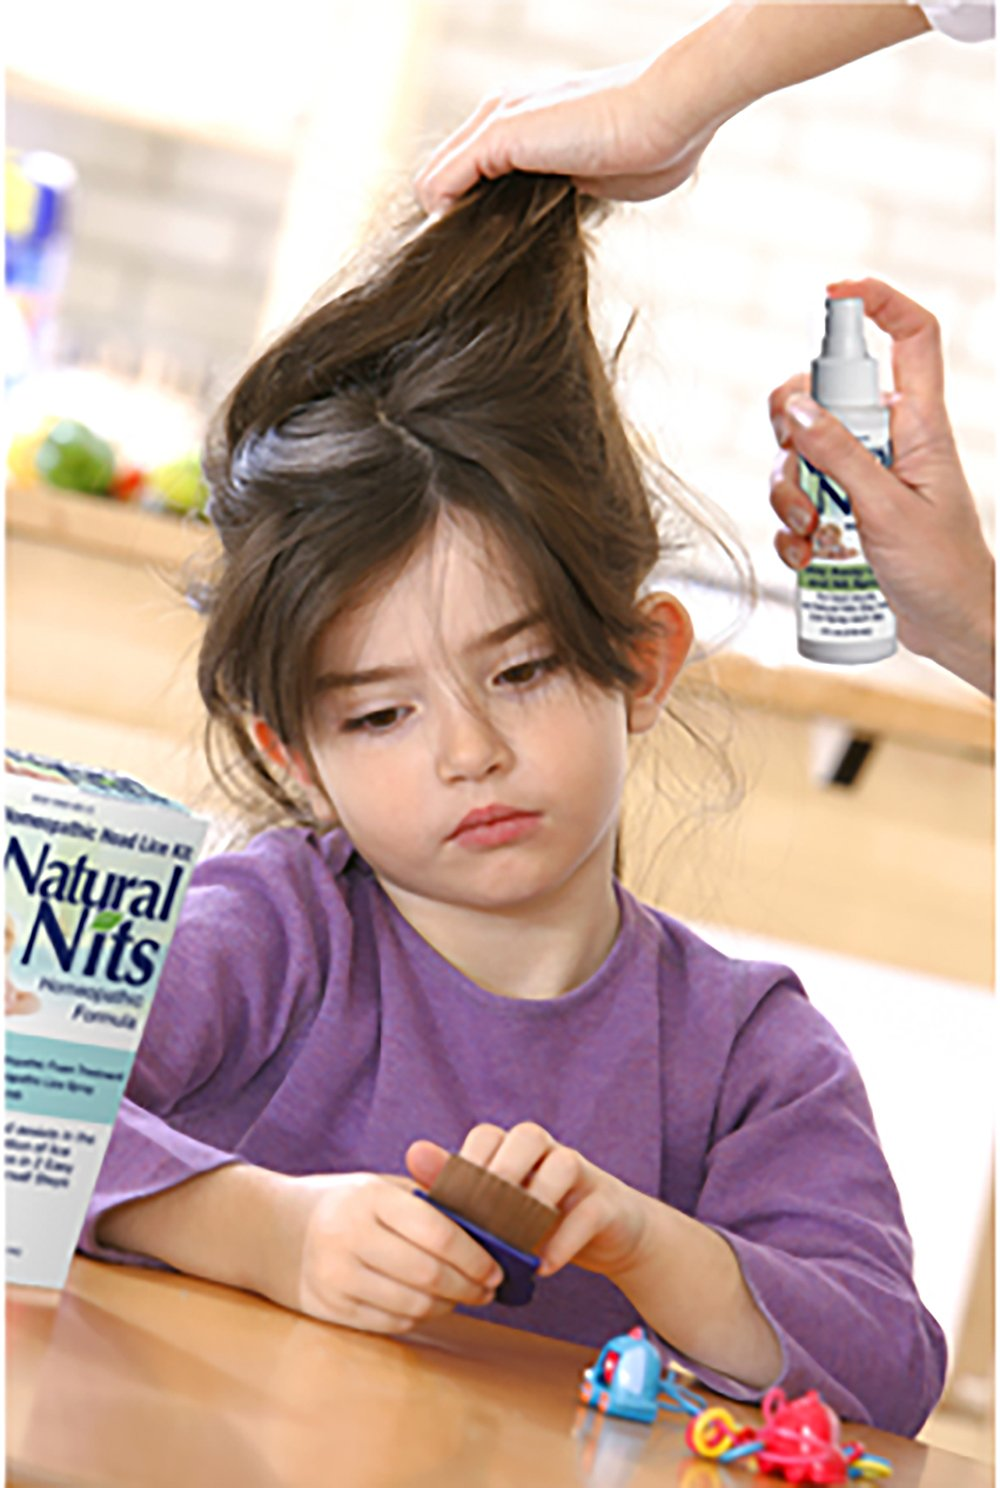 Natural Nits Advanced Lice Treatment Foam **100% All Natural Ingredients - Kills Super Lice Non-Toxic 4oz WITH Comb